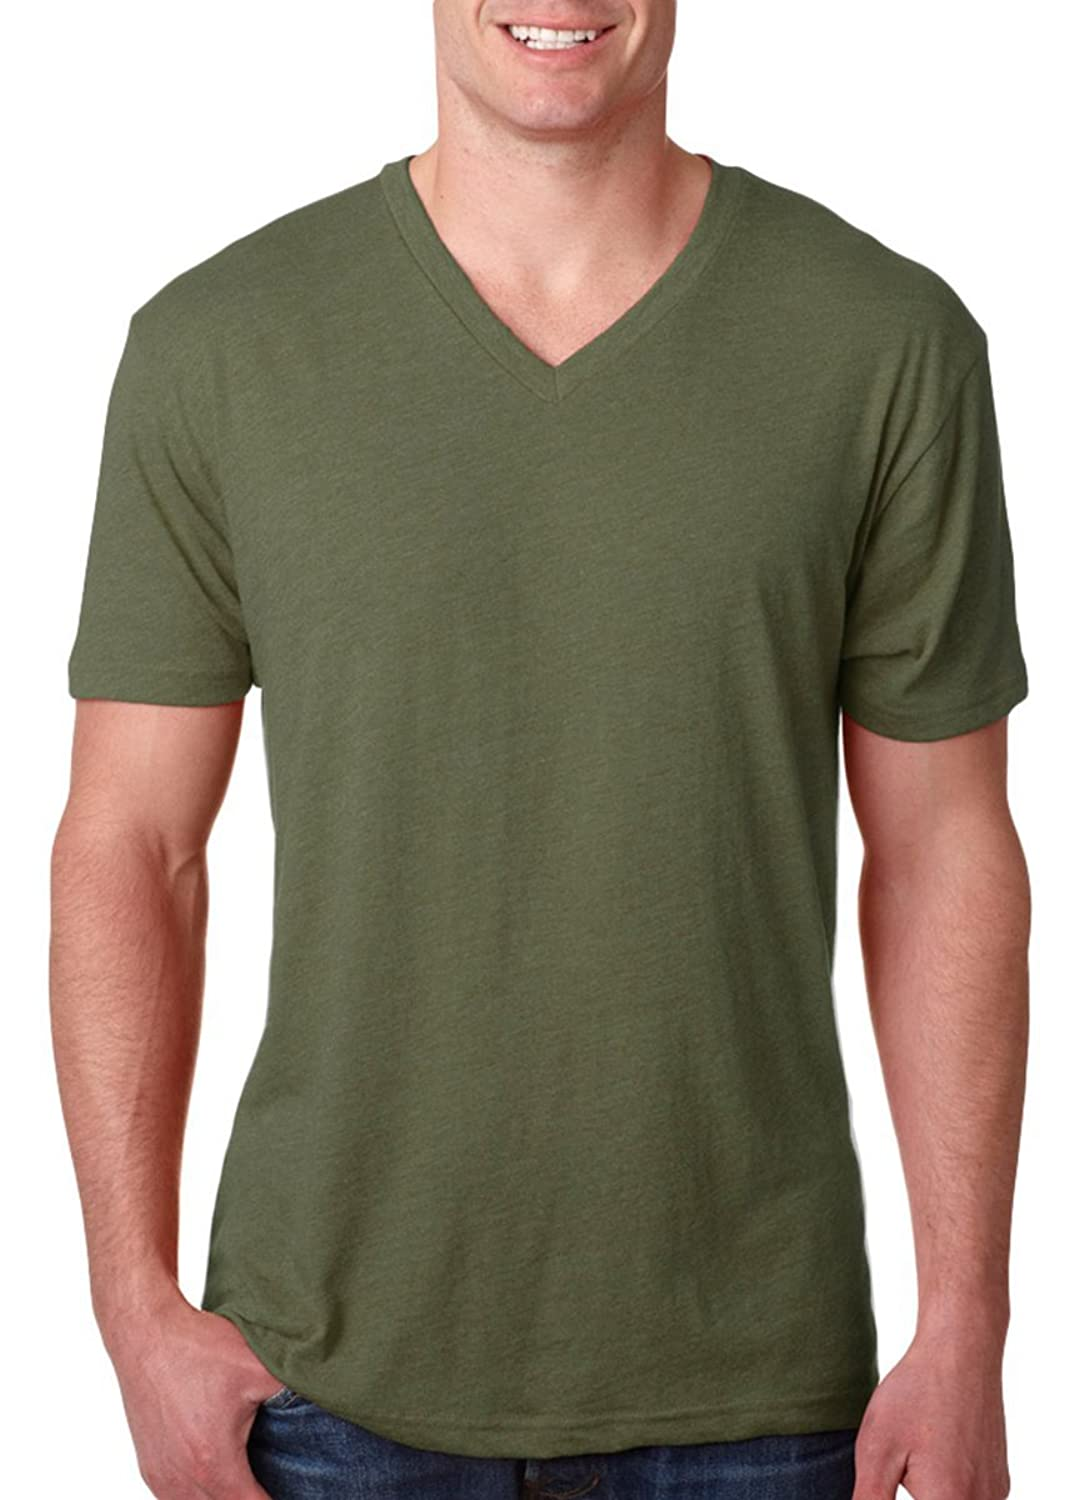 Next Level Mens TriBlend Vee Tee - Military Green - XL